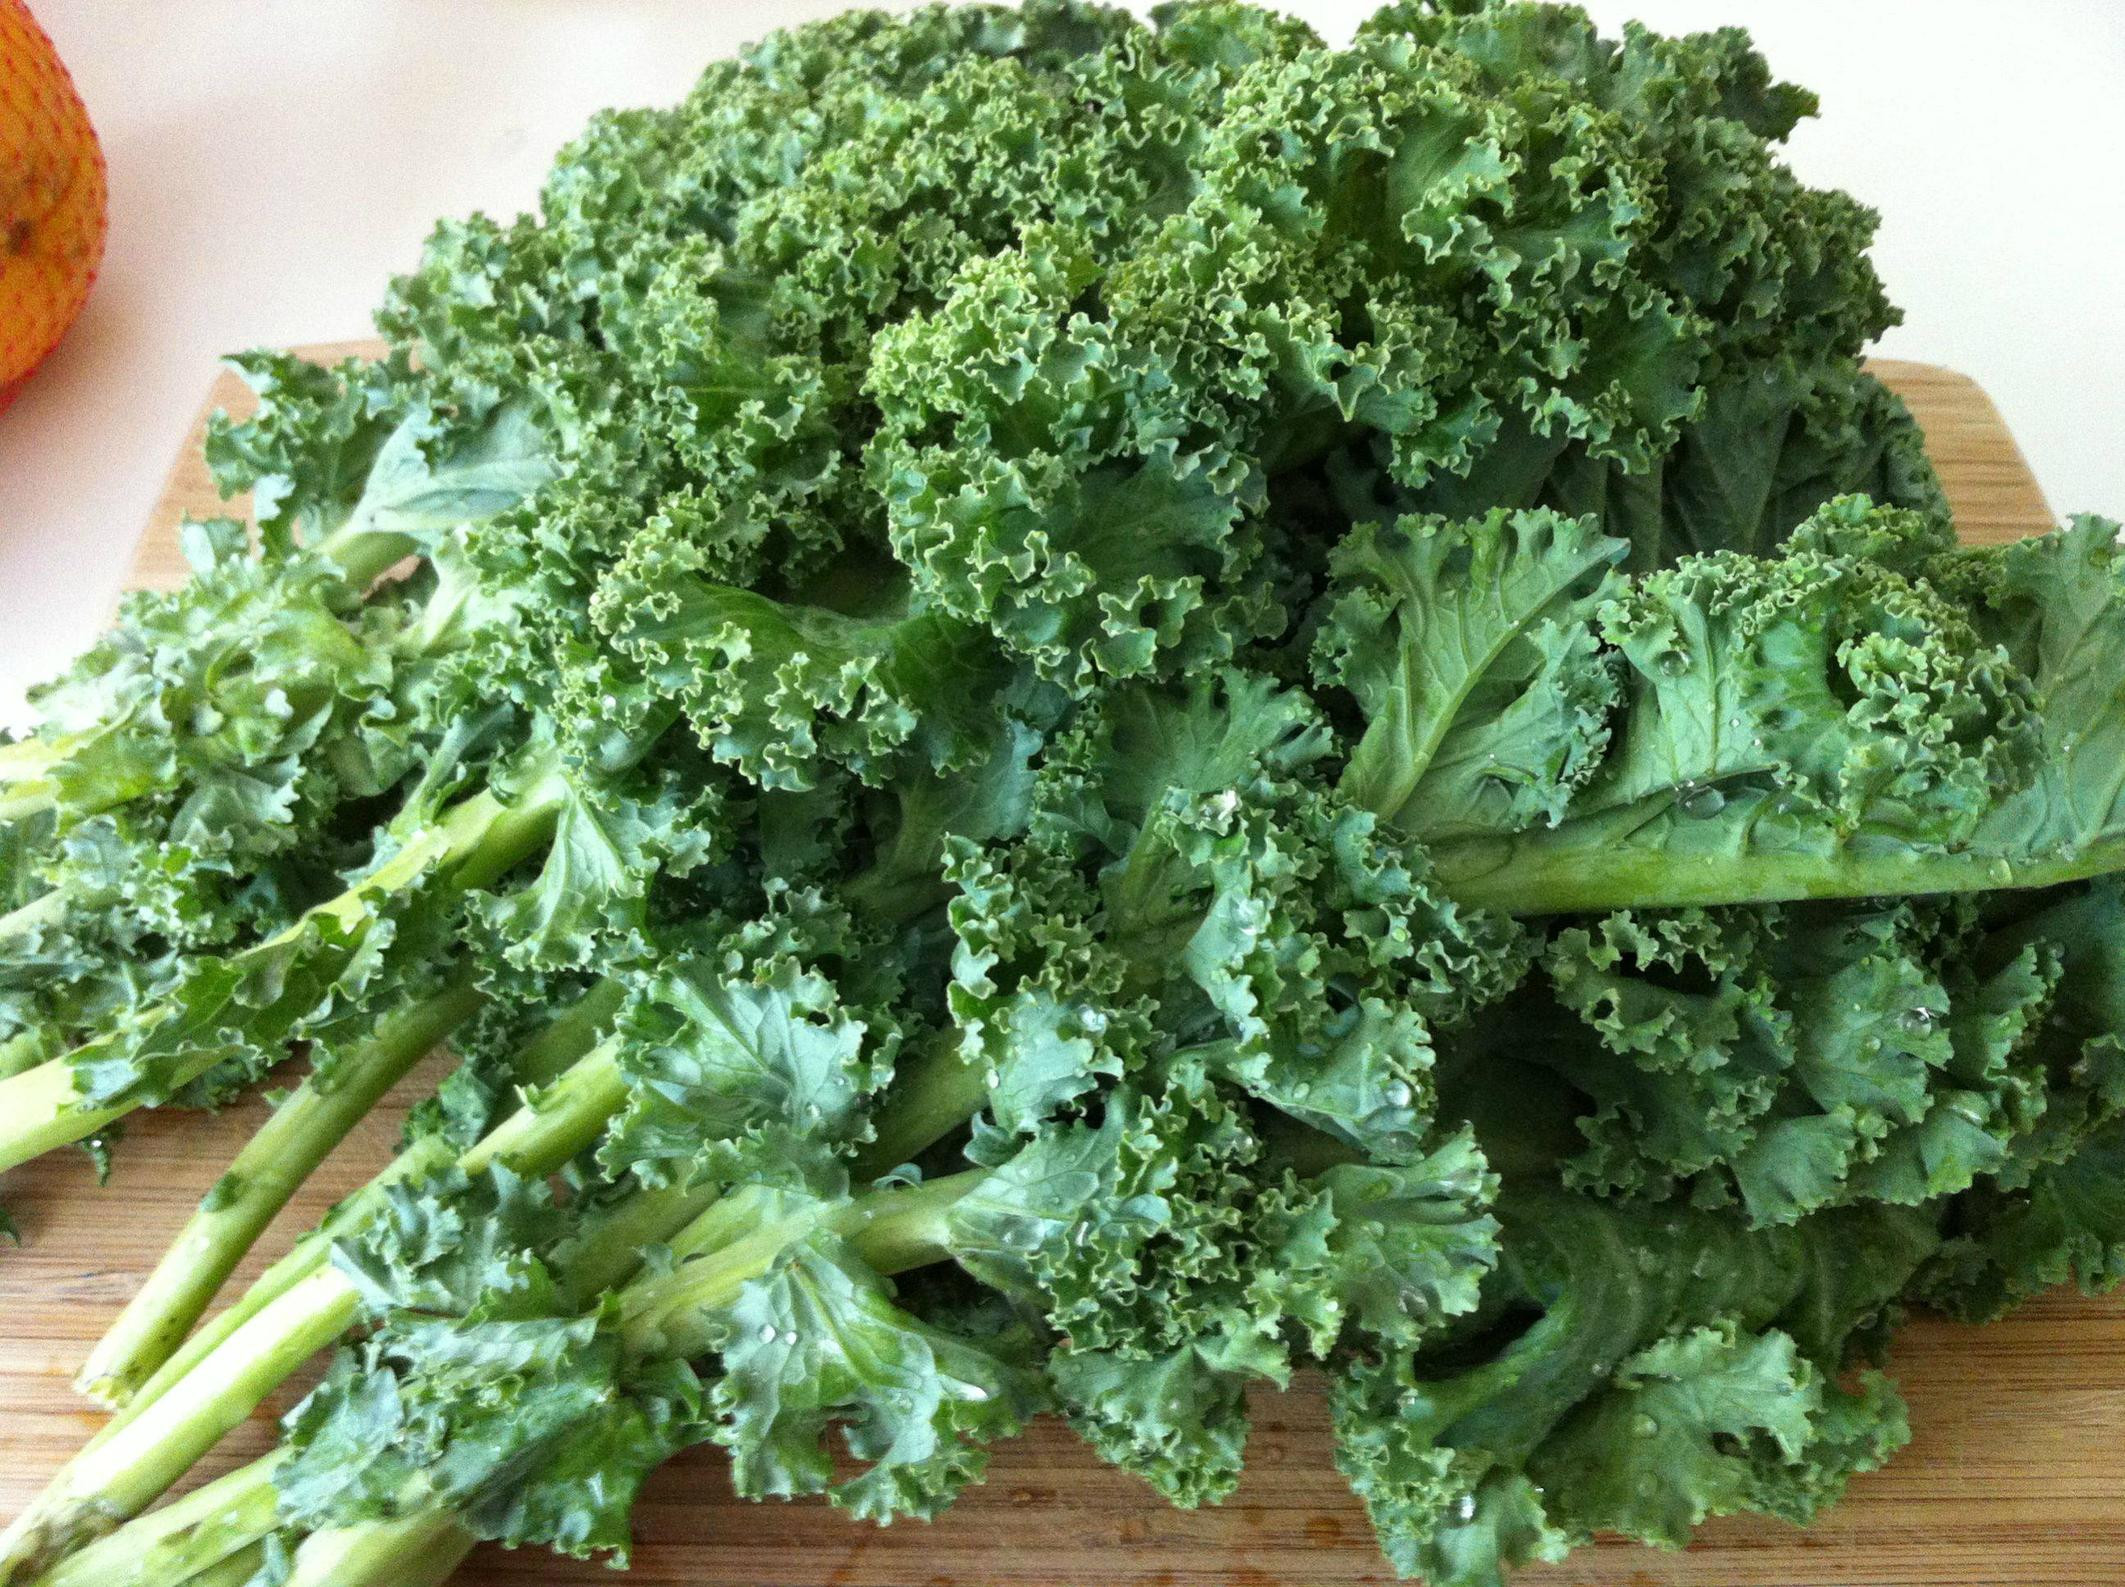 Healthy Recipes With Kale  Kale Chips Recipe Healthy Yummy and Easy to Make Oh